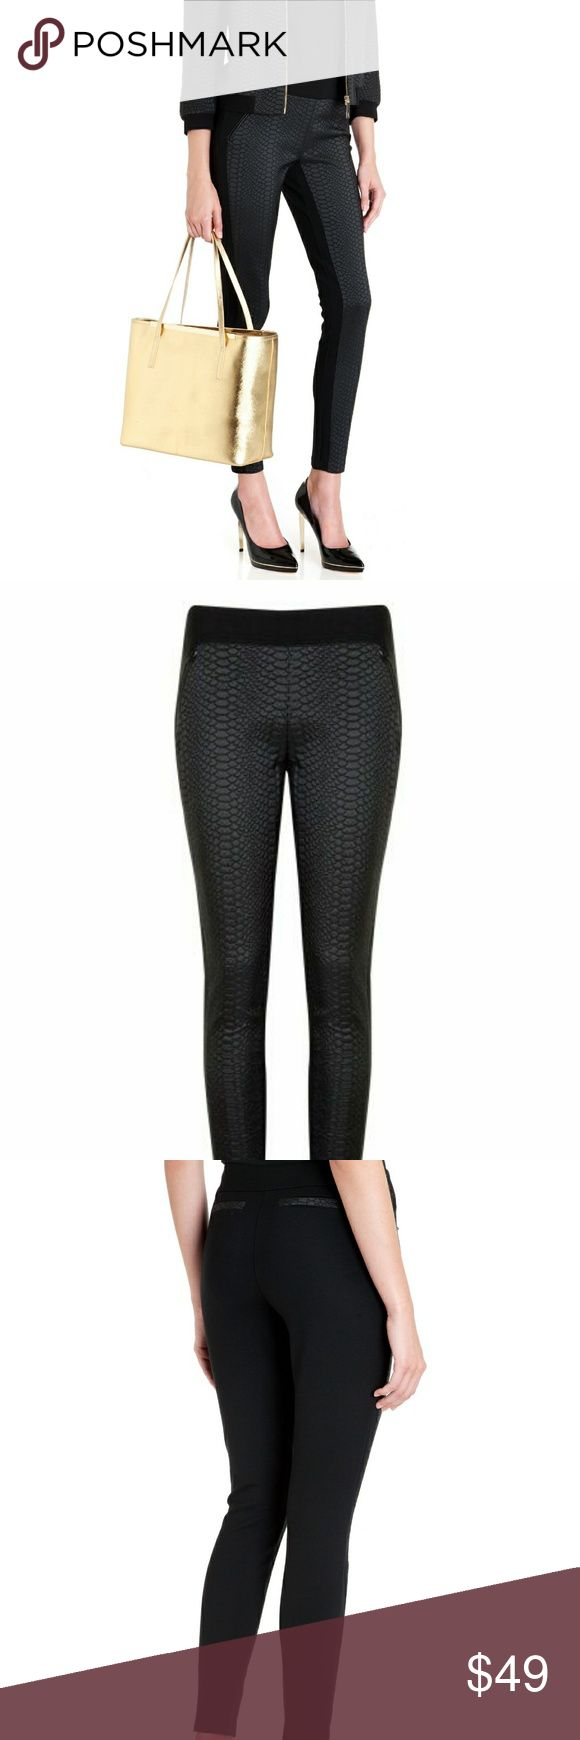 Ted Baker Black Snake Effect Panelled Legging Stretchy luxury pants by Ted Baker size 0 US Size 2. Barely worn perfect condition. Kindly, No offers on this one. It's really high quality with leather details. Ted Baker Pants